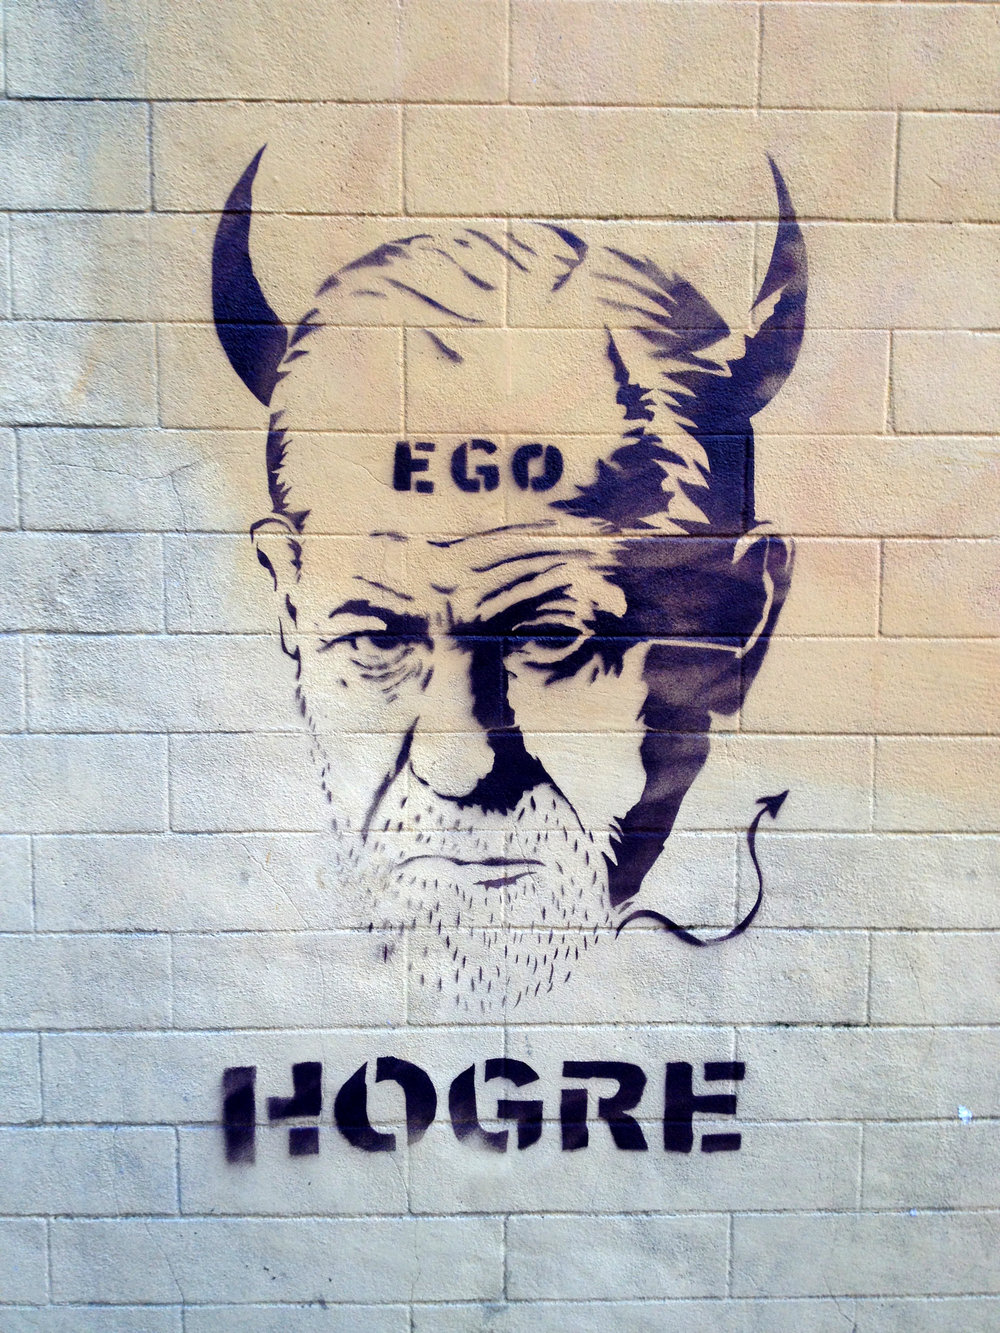 "Sergio is shown this picture from a smartphone. Hogre is the pseudonym of a street artist active in Rome. For more pictures see  here  and  here .         0   0   1   Göteborgs universitet   14.0                      Normal   0       21       false   false   false     SV   JA   X-NONE                                                                                                                                                                                                                                                                                                                                                                               /* Style Definitions */ table.MsoNormalTable 	{mso-style-name:""Normal tabell""; 	mso-tstyle-rowband-size:0; 	mso-tstyle-colband-size:0; 	mso-style-noshow:yes; 	mso-style-priority:99; 	mso-style-parent:""""; 	mso-padding-alt:0cm 5.4pt 0cm 5.4pt; 	mso-para-margin:0cm; 	mso-para-margin-bottom:.0001pt; 	mso-pagination:widow-orphan; 	font-size:10.0pt; 	font-family:""Times New Roman"";}"